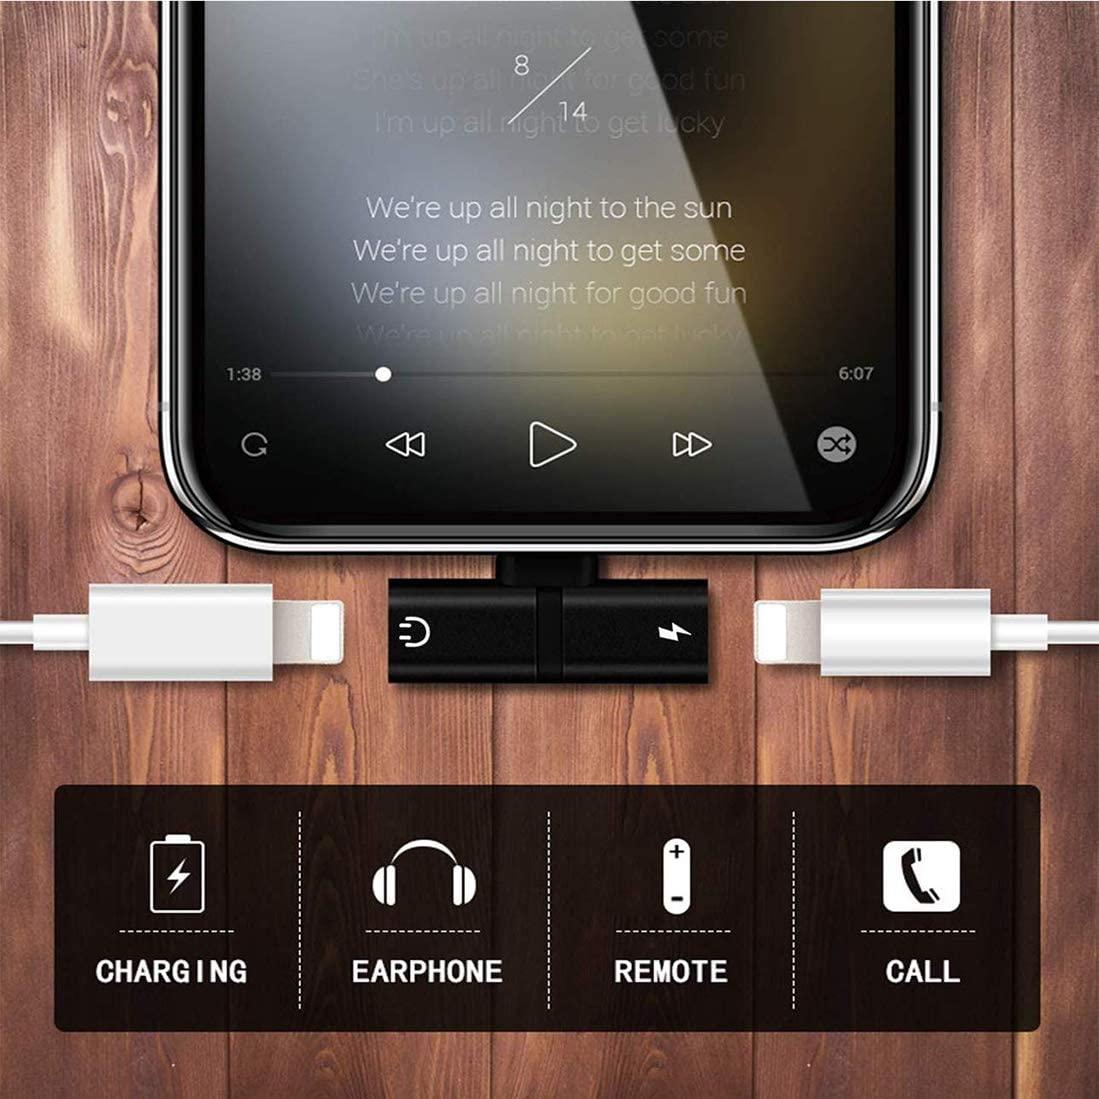 Headphone Jack Adapter Earphone for Phone 11 Dual Adapter Splitter Charger and Headphones Dongle Compatible with Phone 11Pro max//XR//XS//X//7//8 Plus Aux Audio /& Call Support All iOS-Black